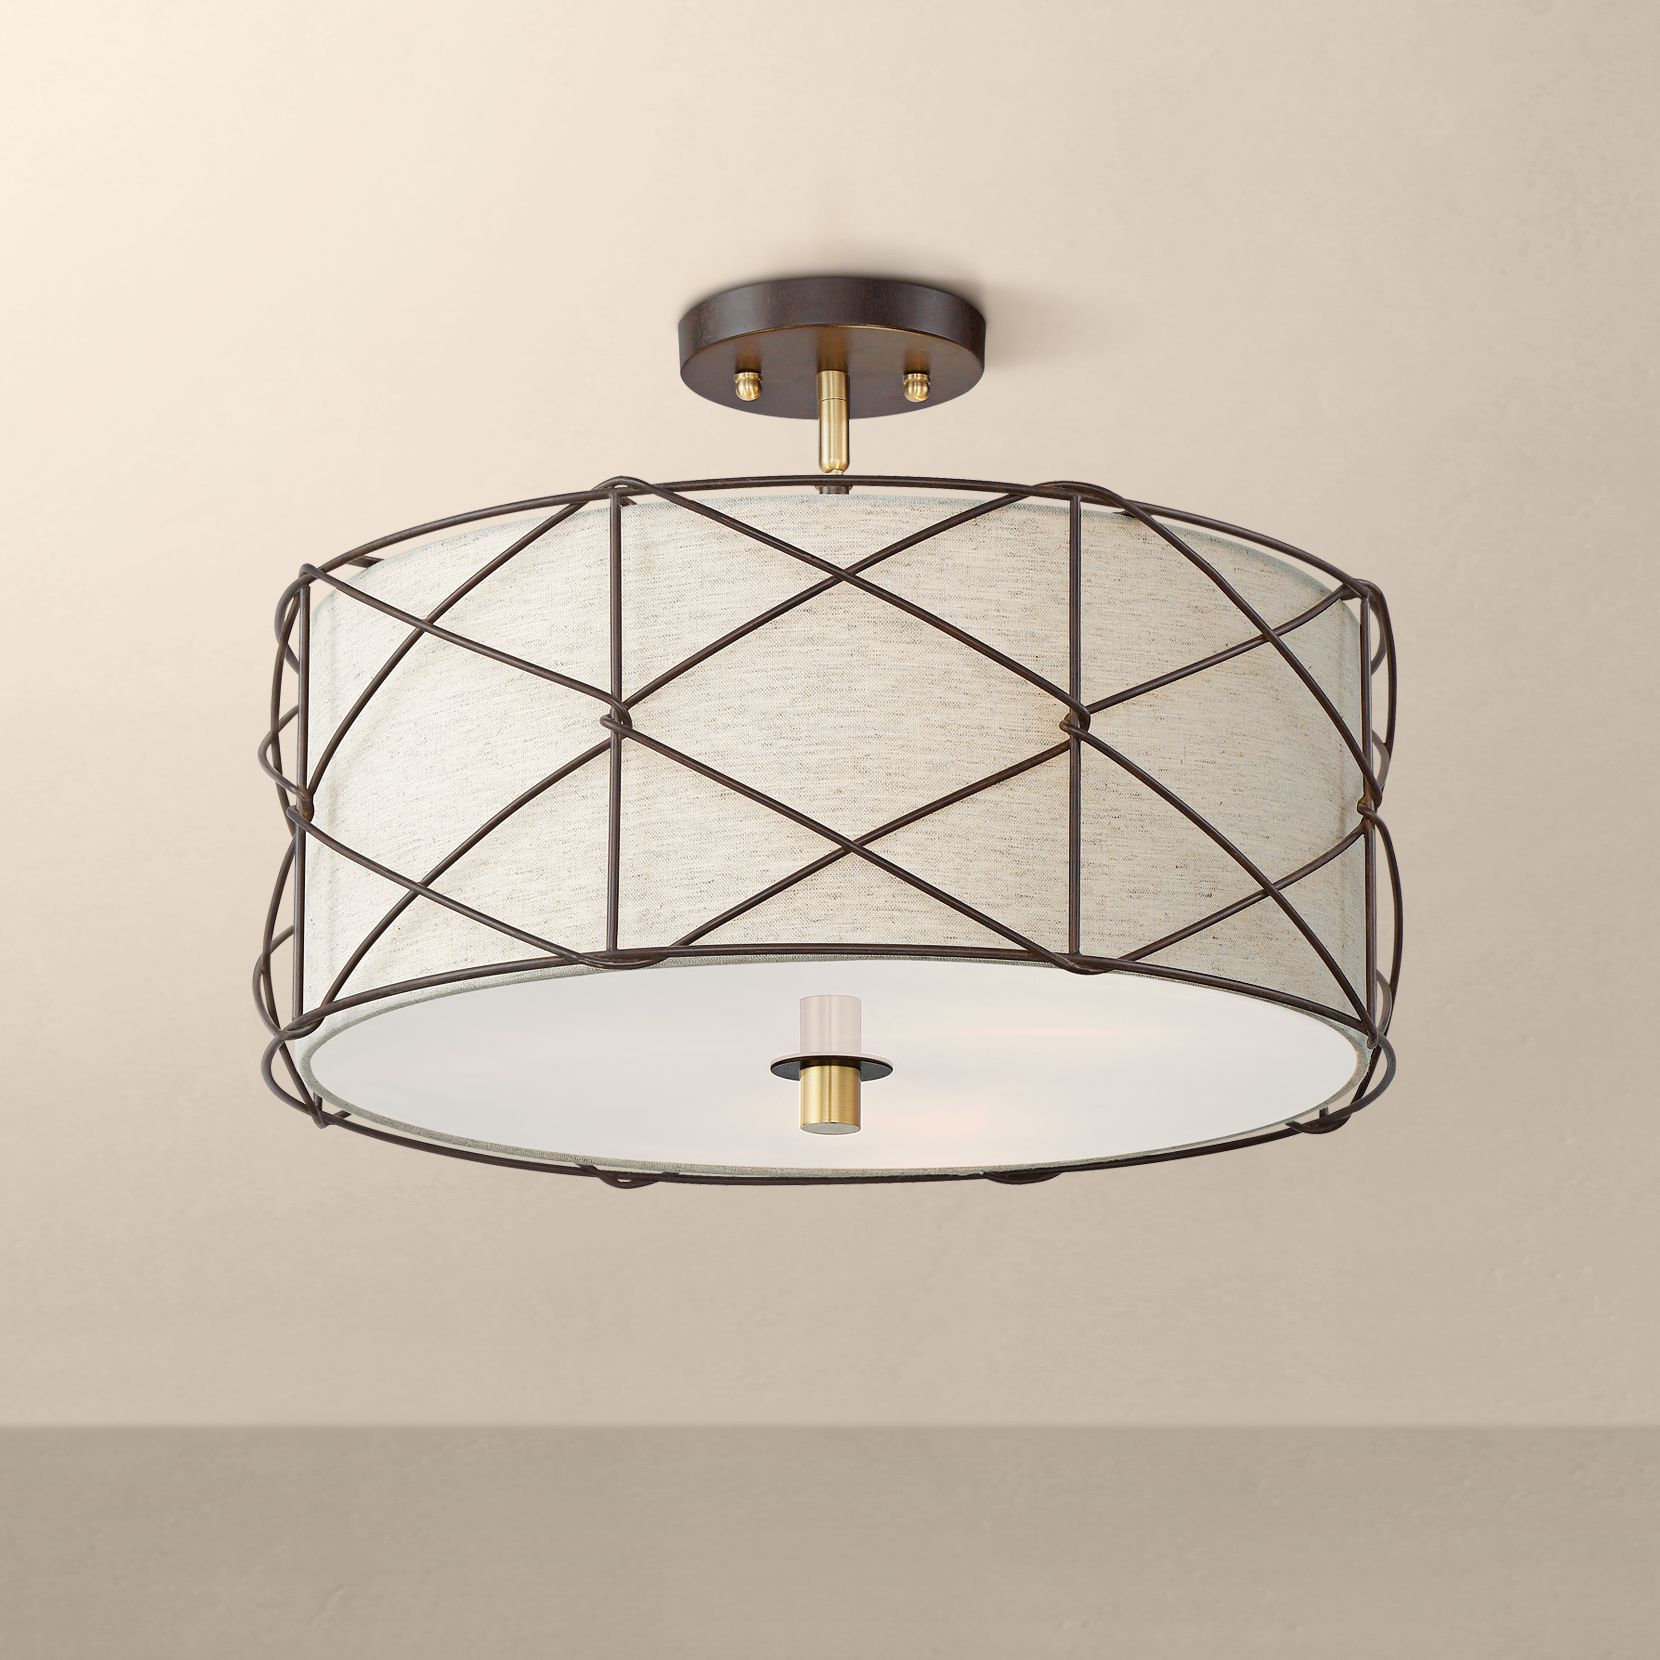 barnes and ivy farmhouse ceiling light semi flush mount fixture bronze 18 wide oatmeal linen shade acrylic diffuser for bedroom